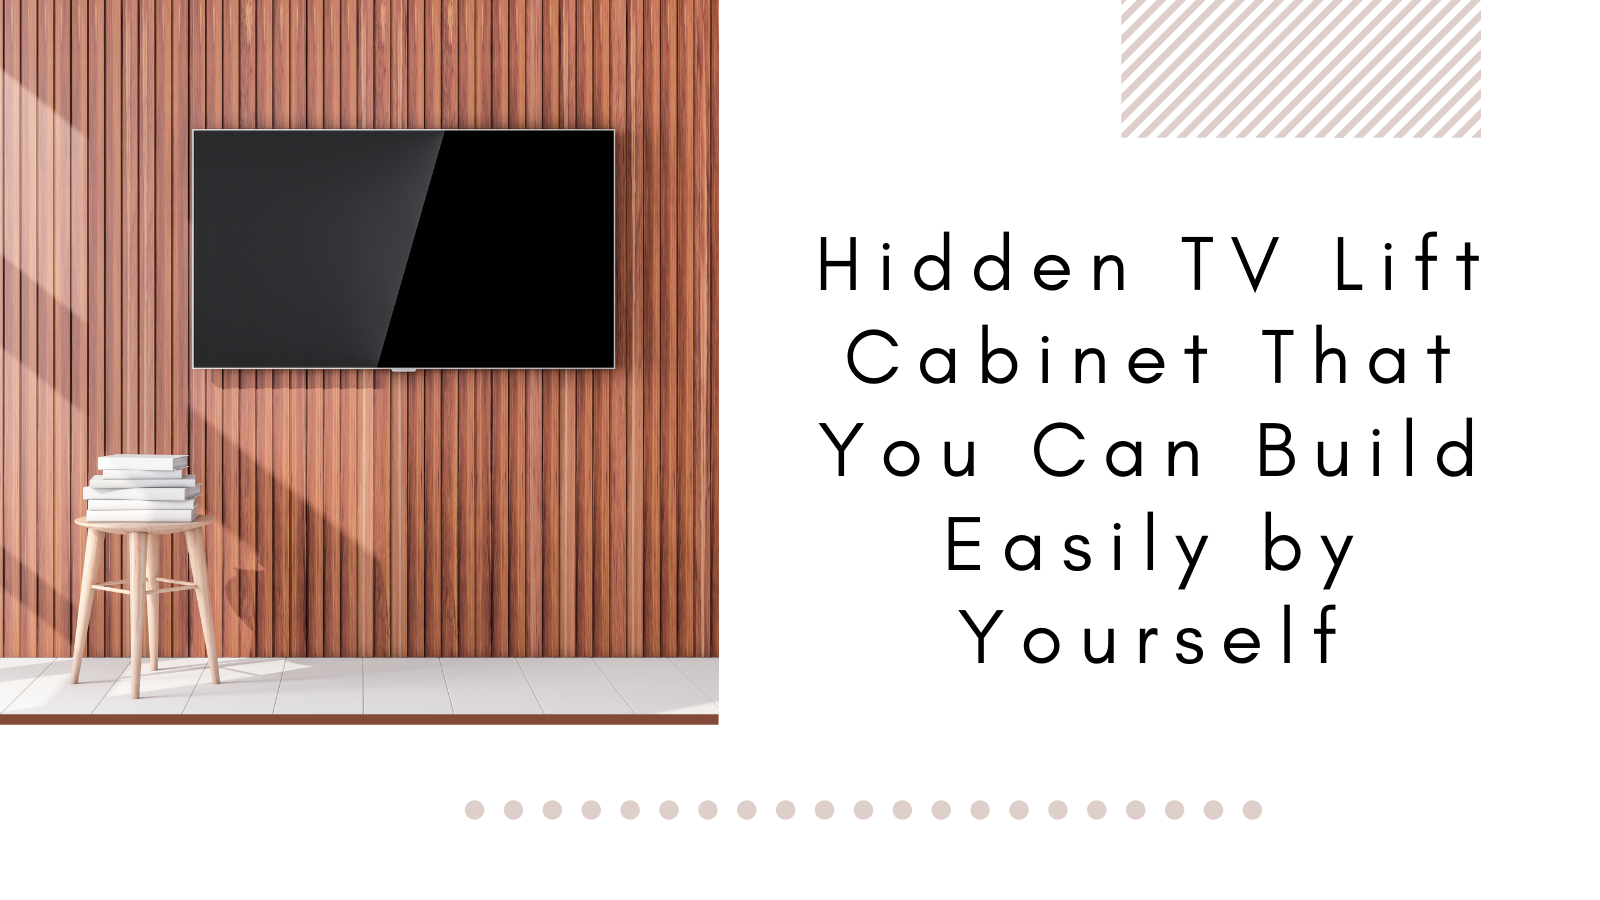 Hidden TV Lift Cabinet That You Can Build Easily by Yourself